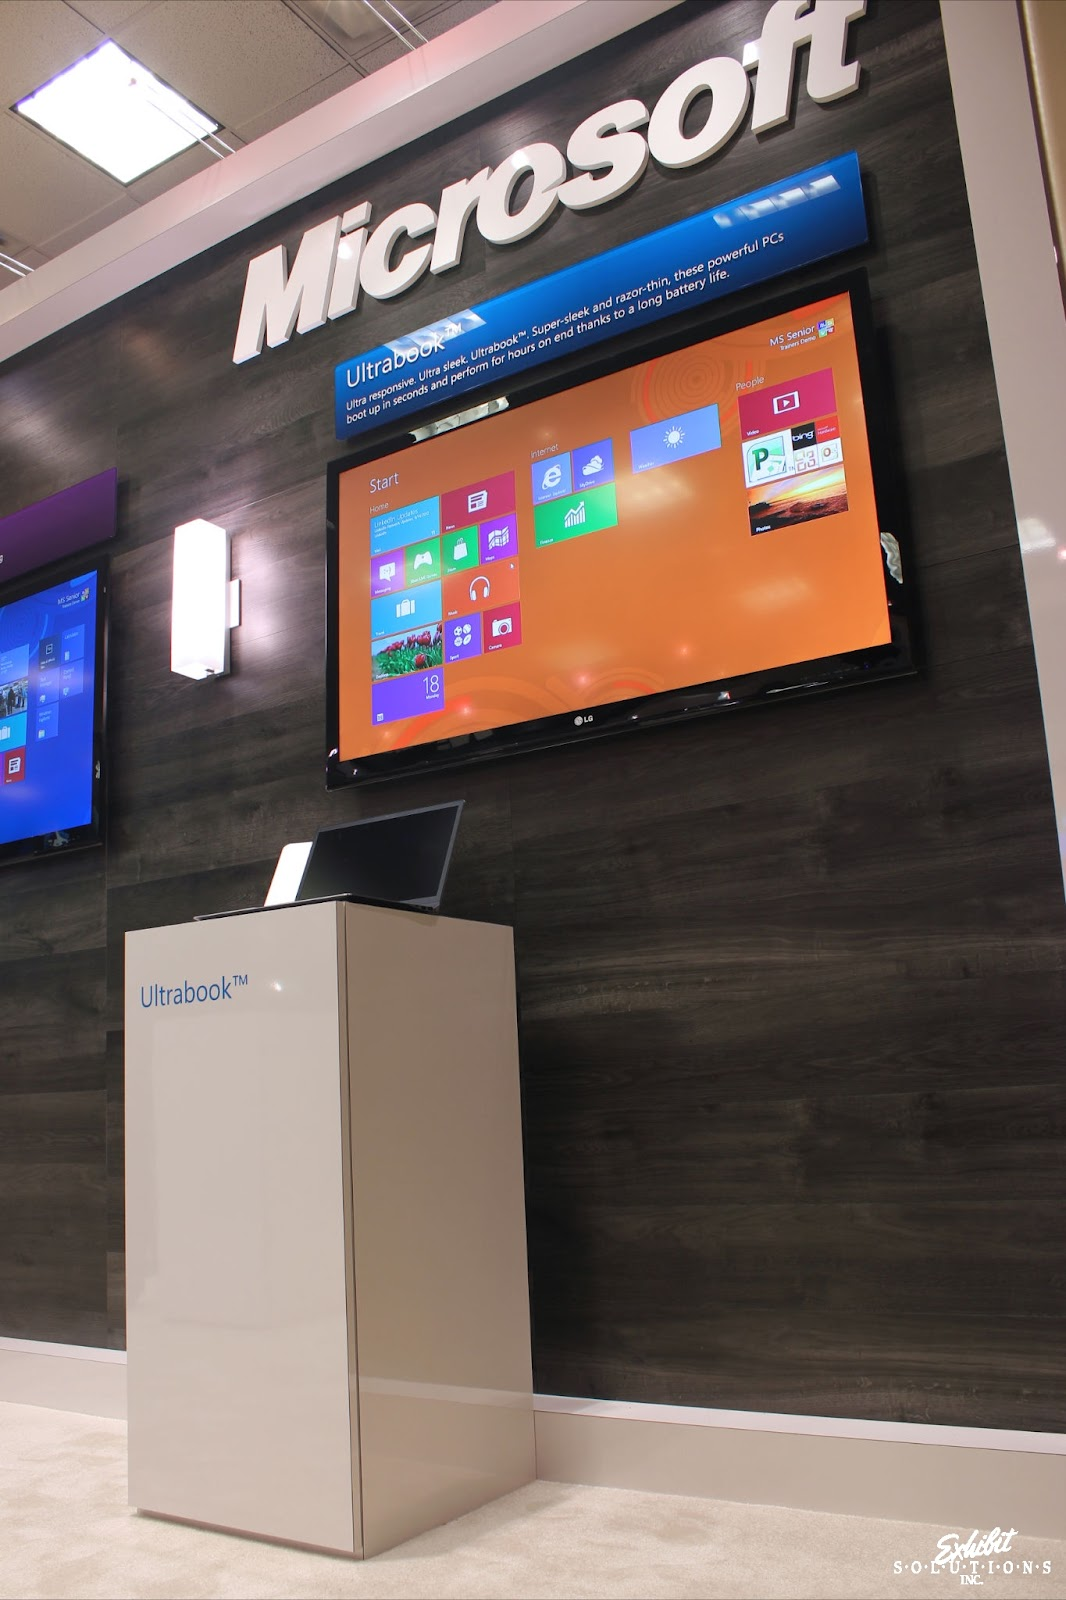 Exhibit Solutions - Microsoft - Future Shop Home Office Show 2012 - 07.JPG